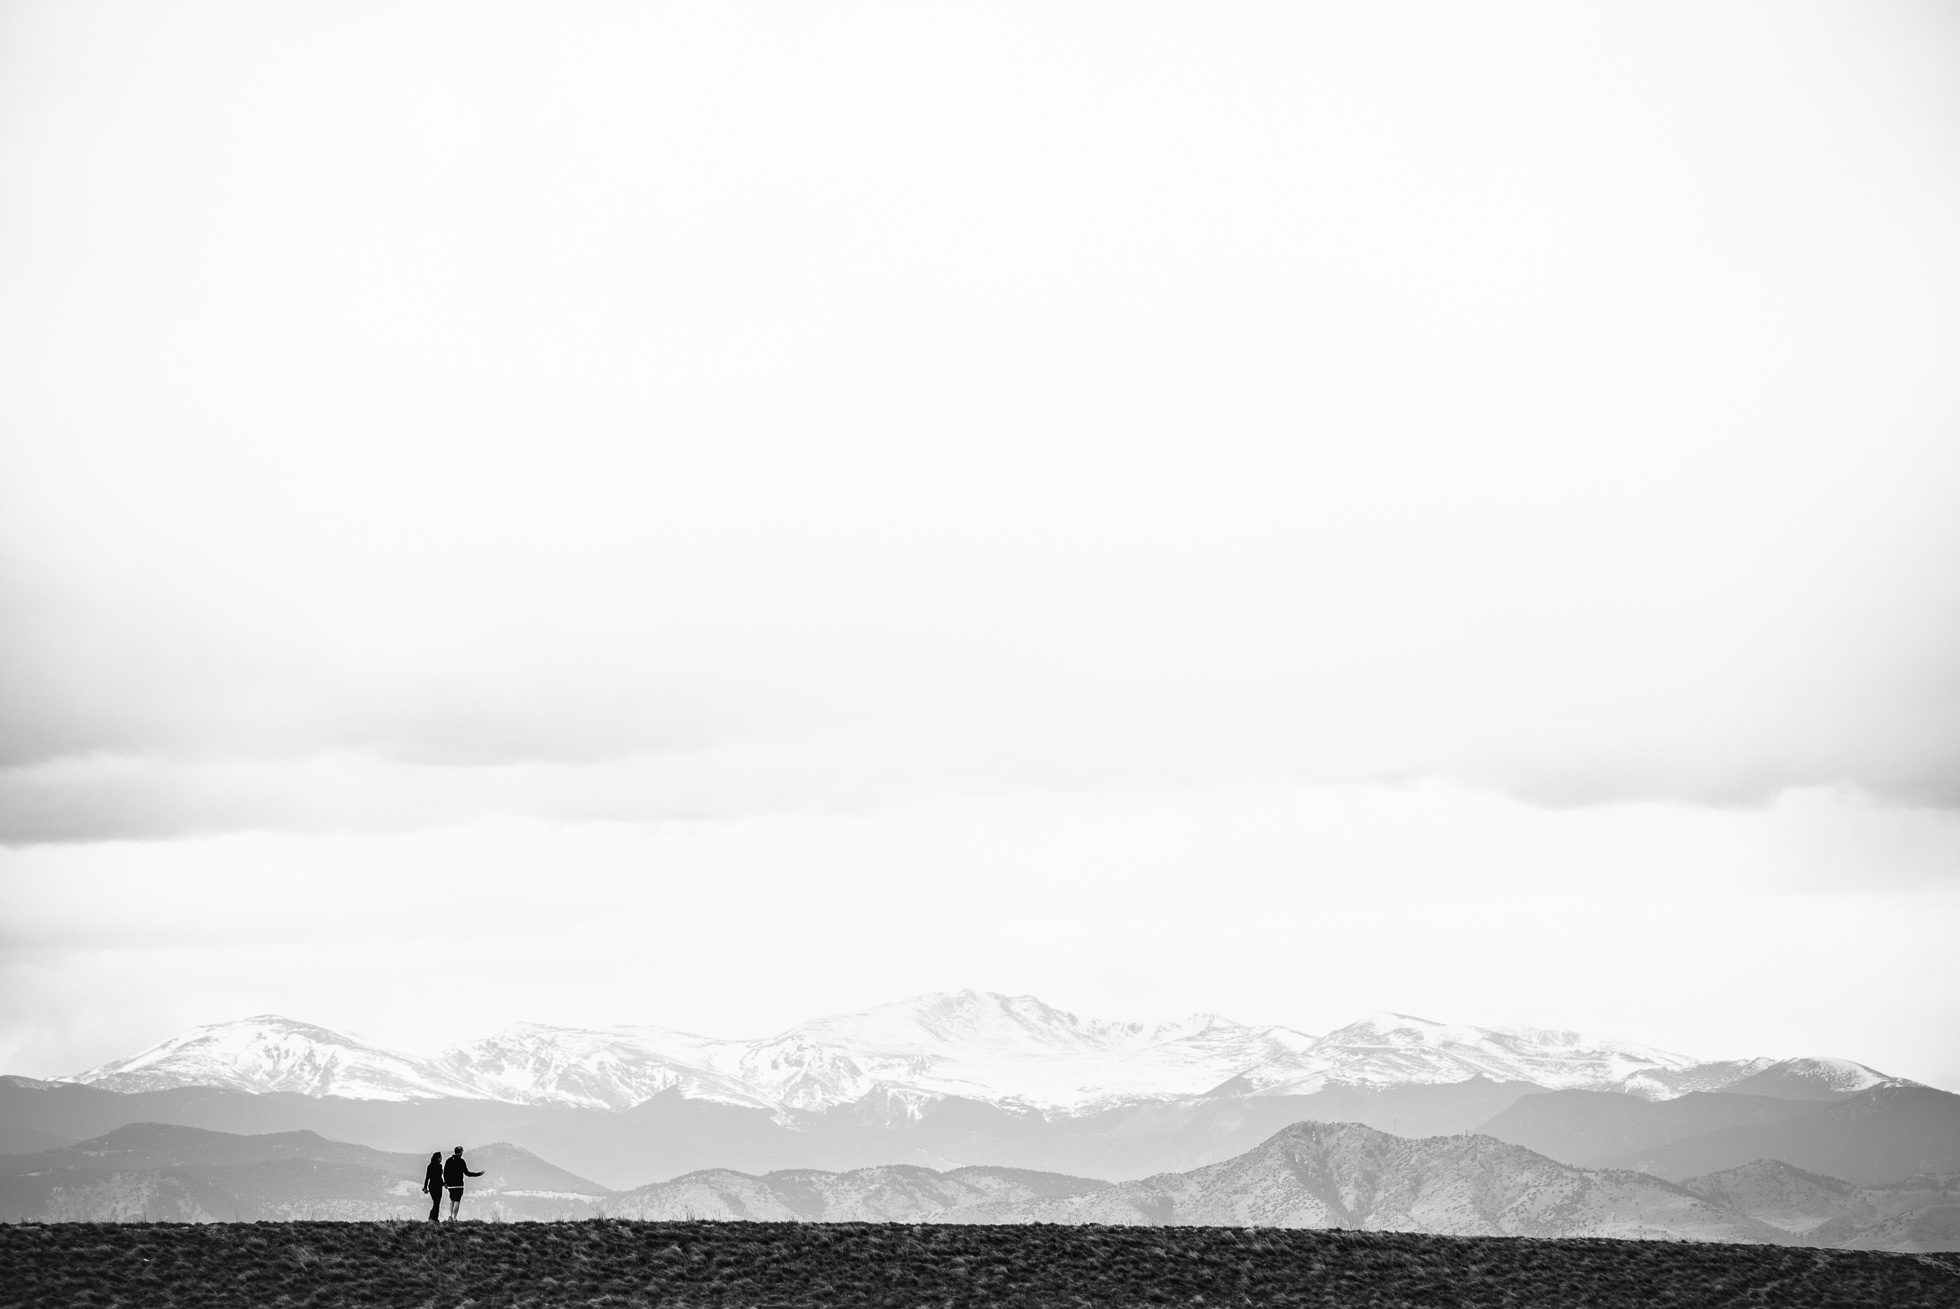 A couple walks on a ridge in Lowry, Colorado, in the shadow of the Rocky Mountains which are off in the distance.